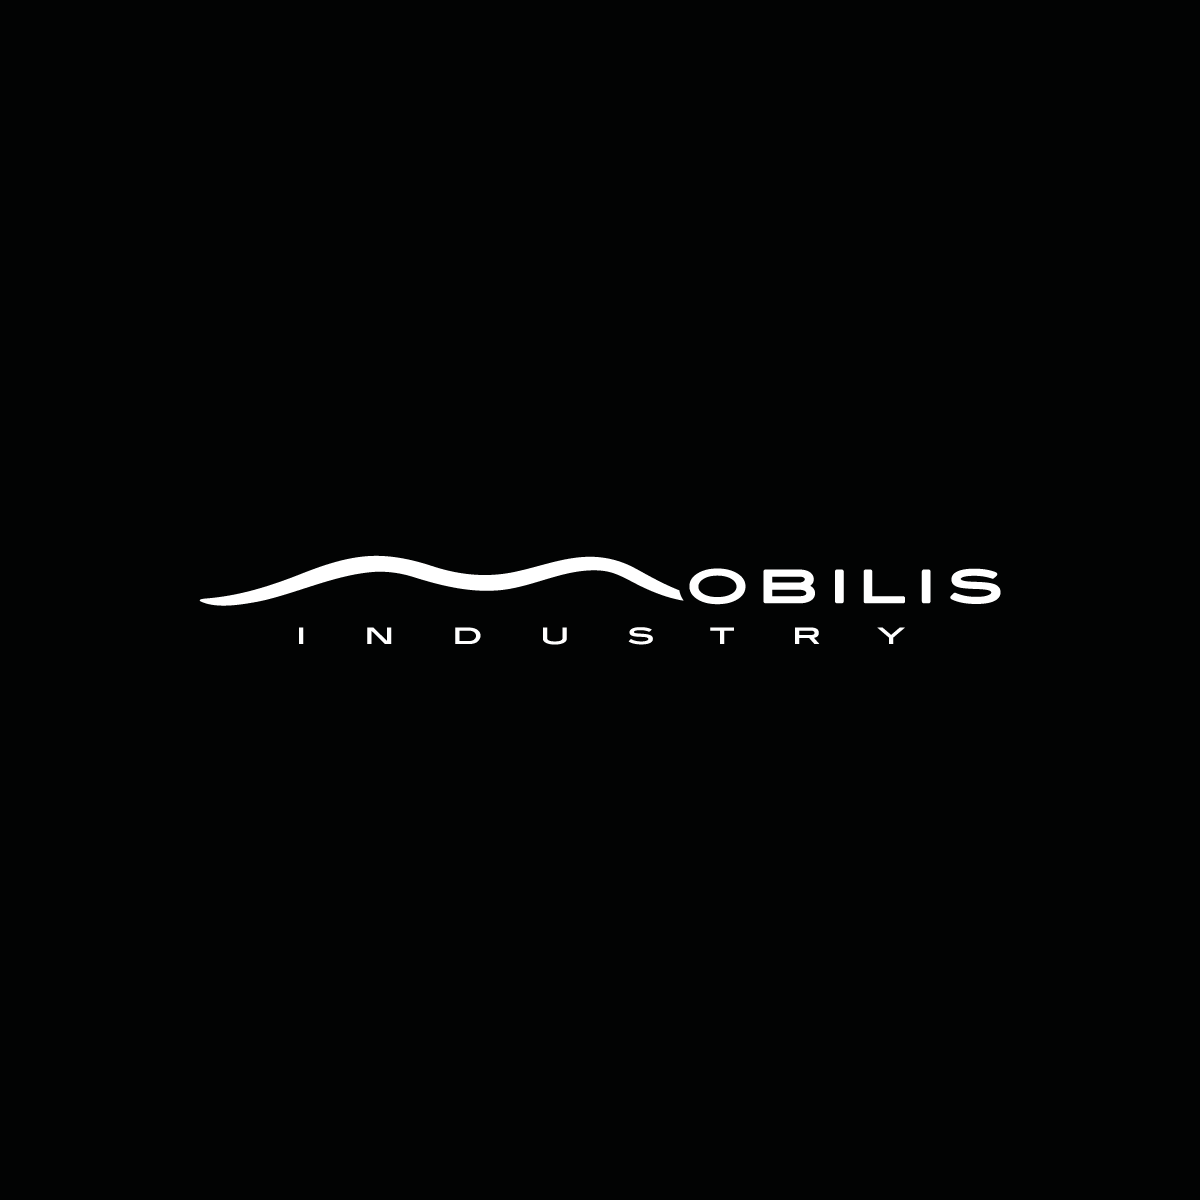 mobilis-industry-logo